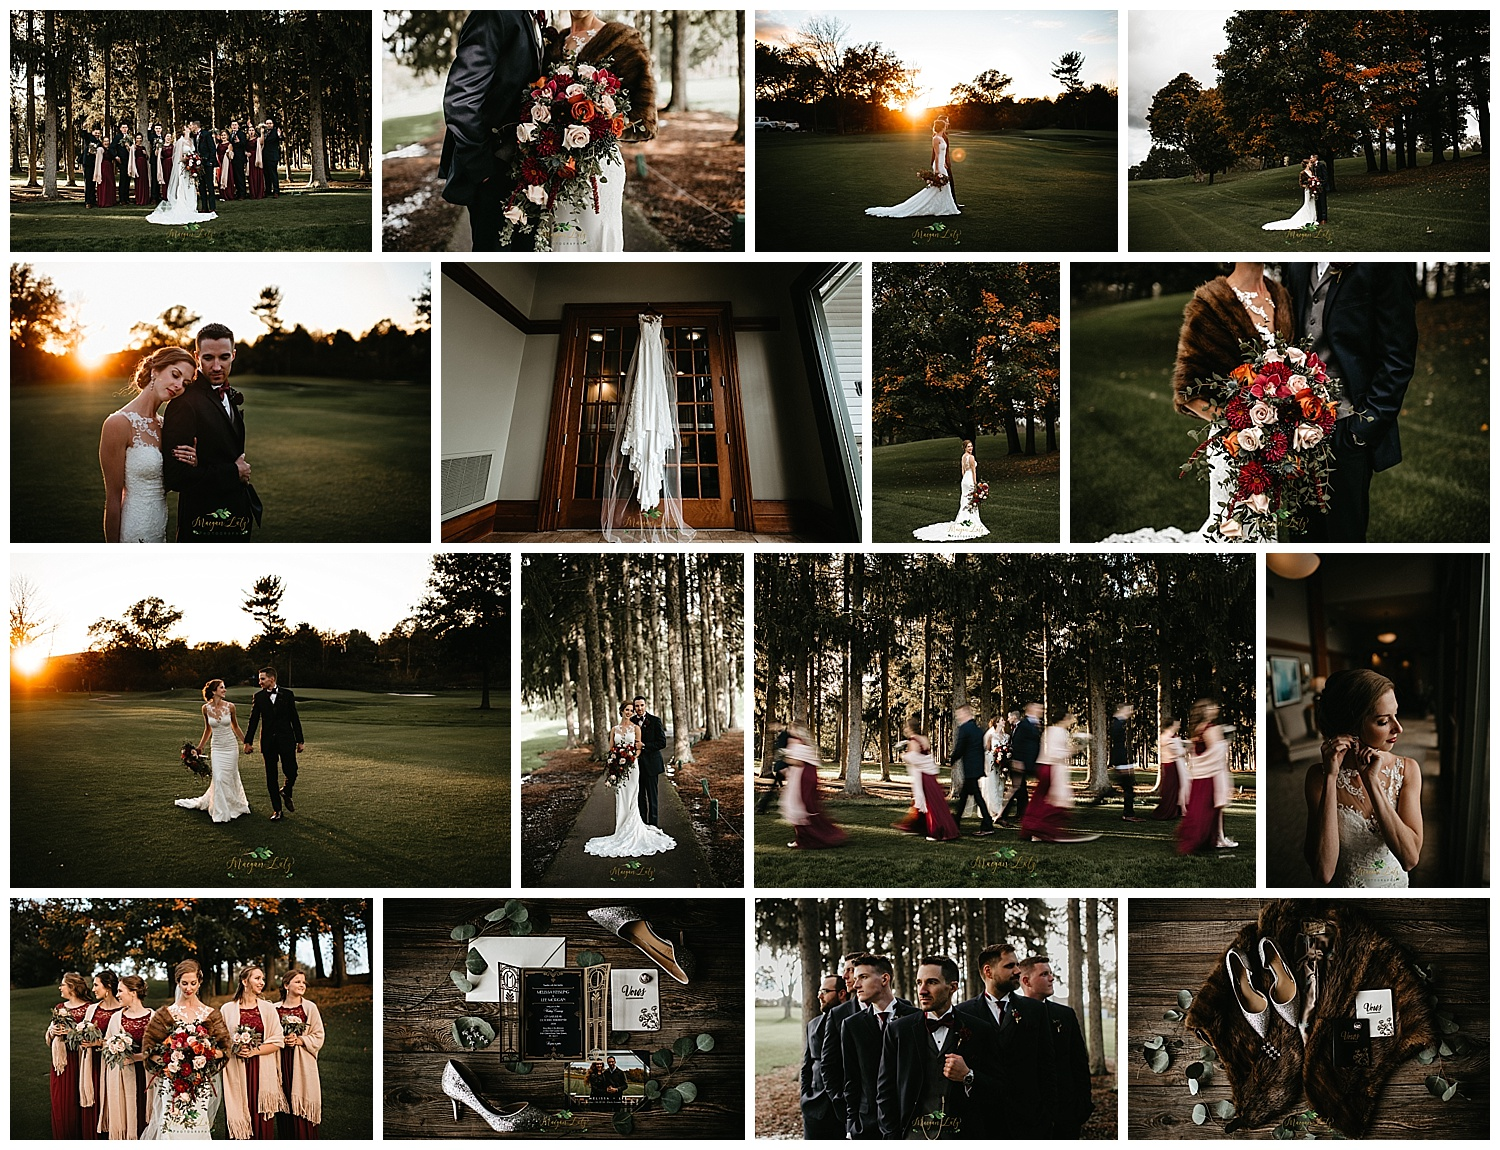 NEPA-wedding-photographer-at-Farmstead-Golf-and-country-club-LaFayette-Township-New-Jersey_0071.jpg